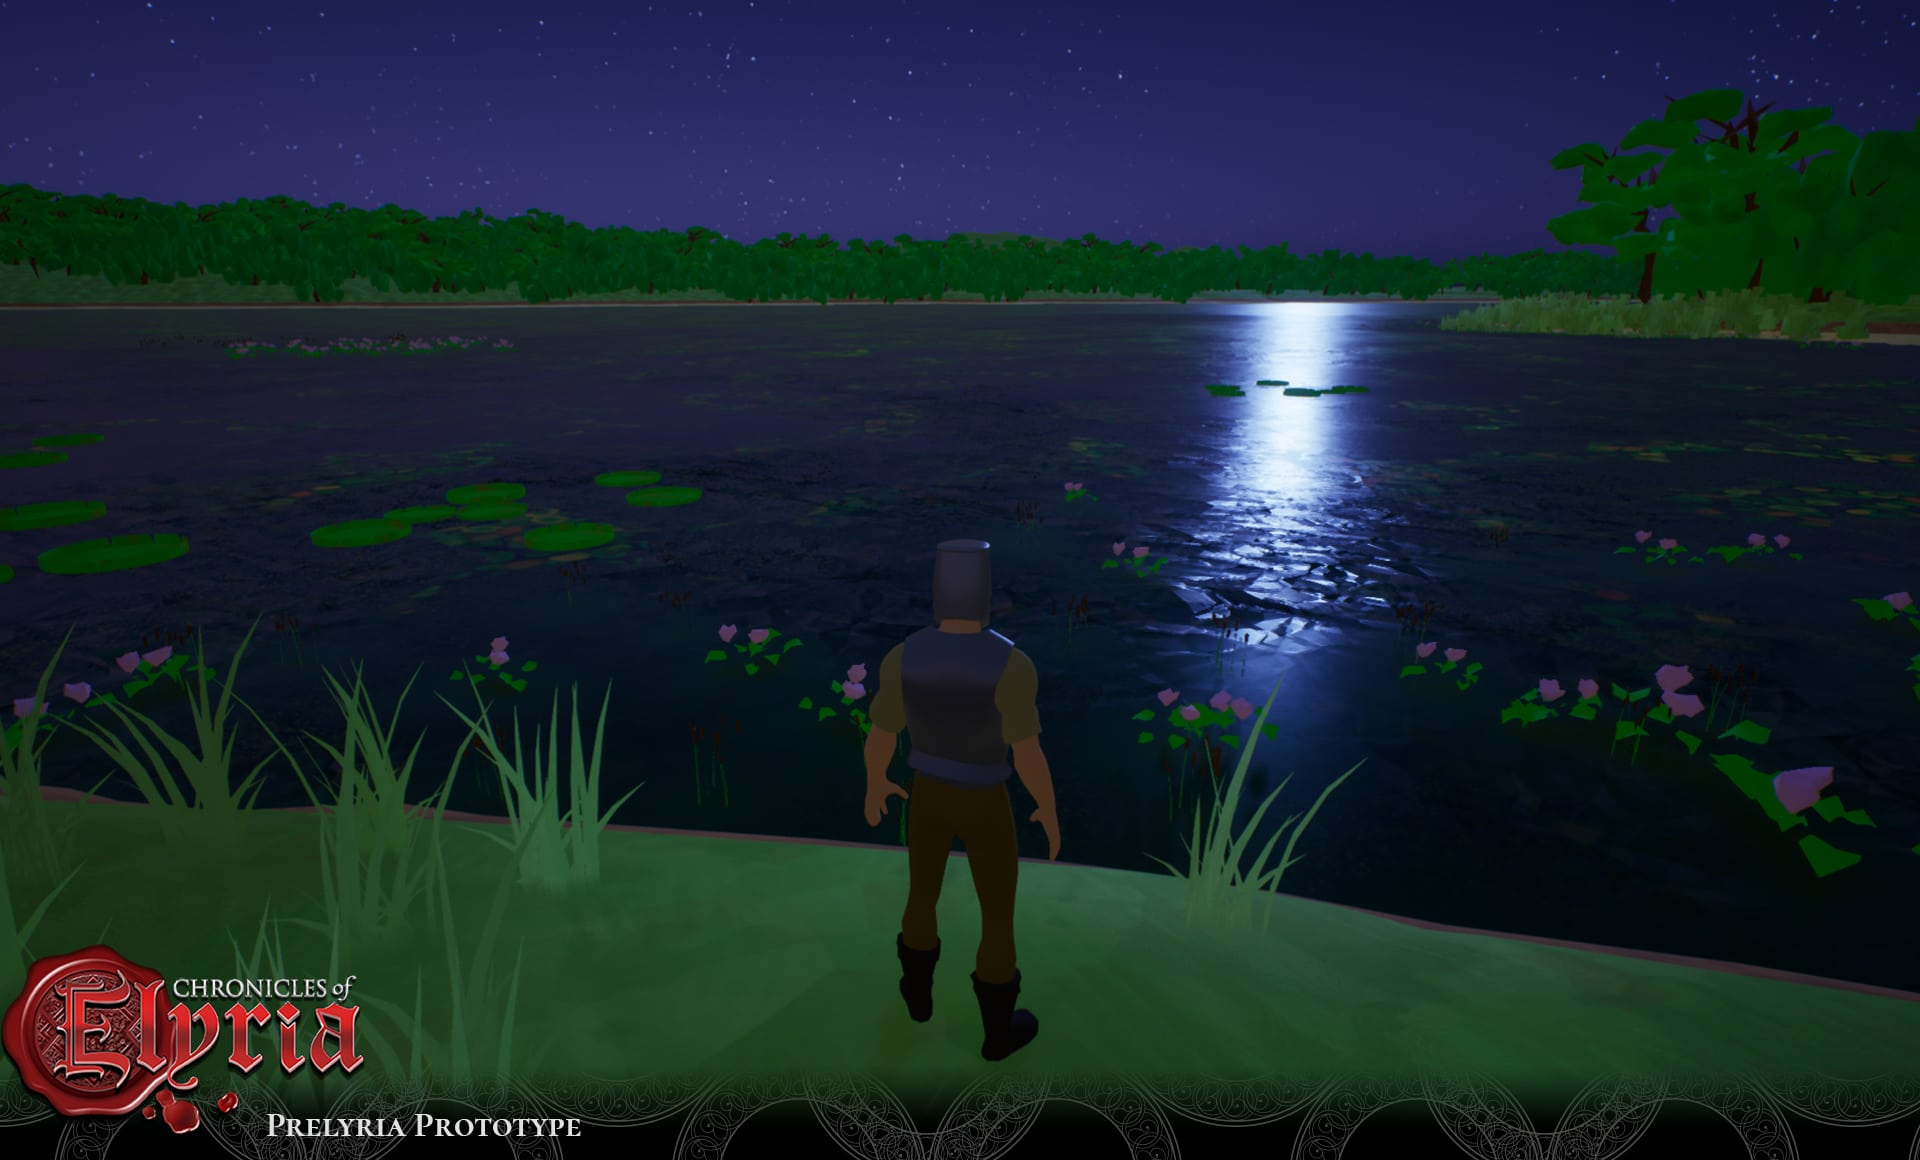 Prelyria screenshot of a player near a lake.